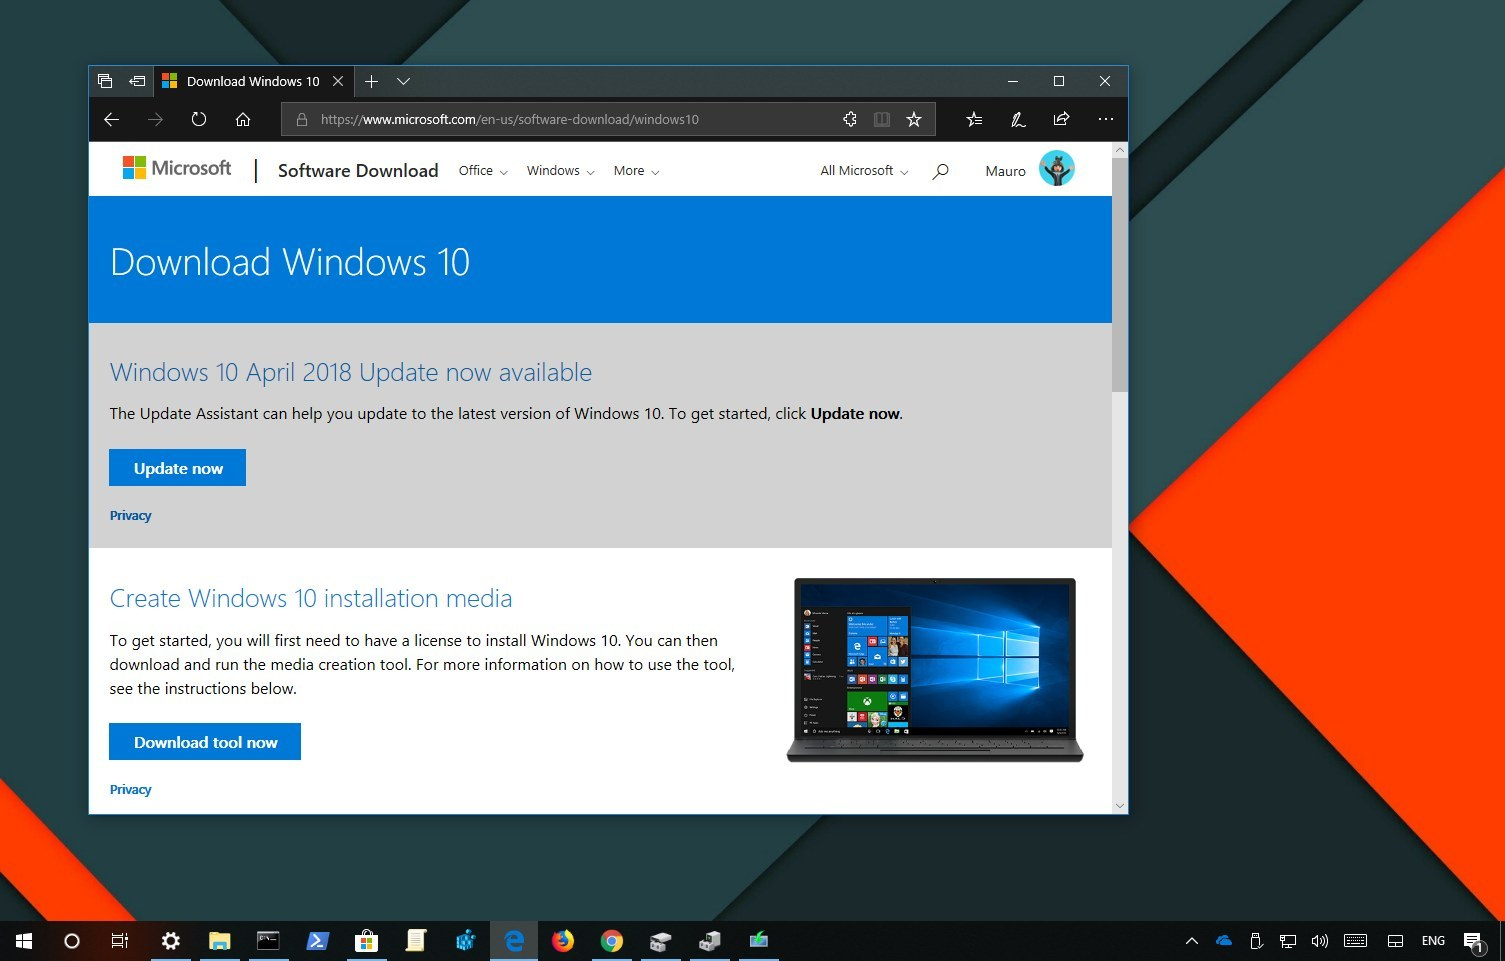 Download the Windows 10 version 1803 ISO while you can